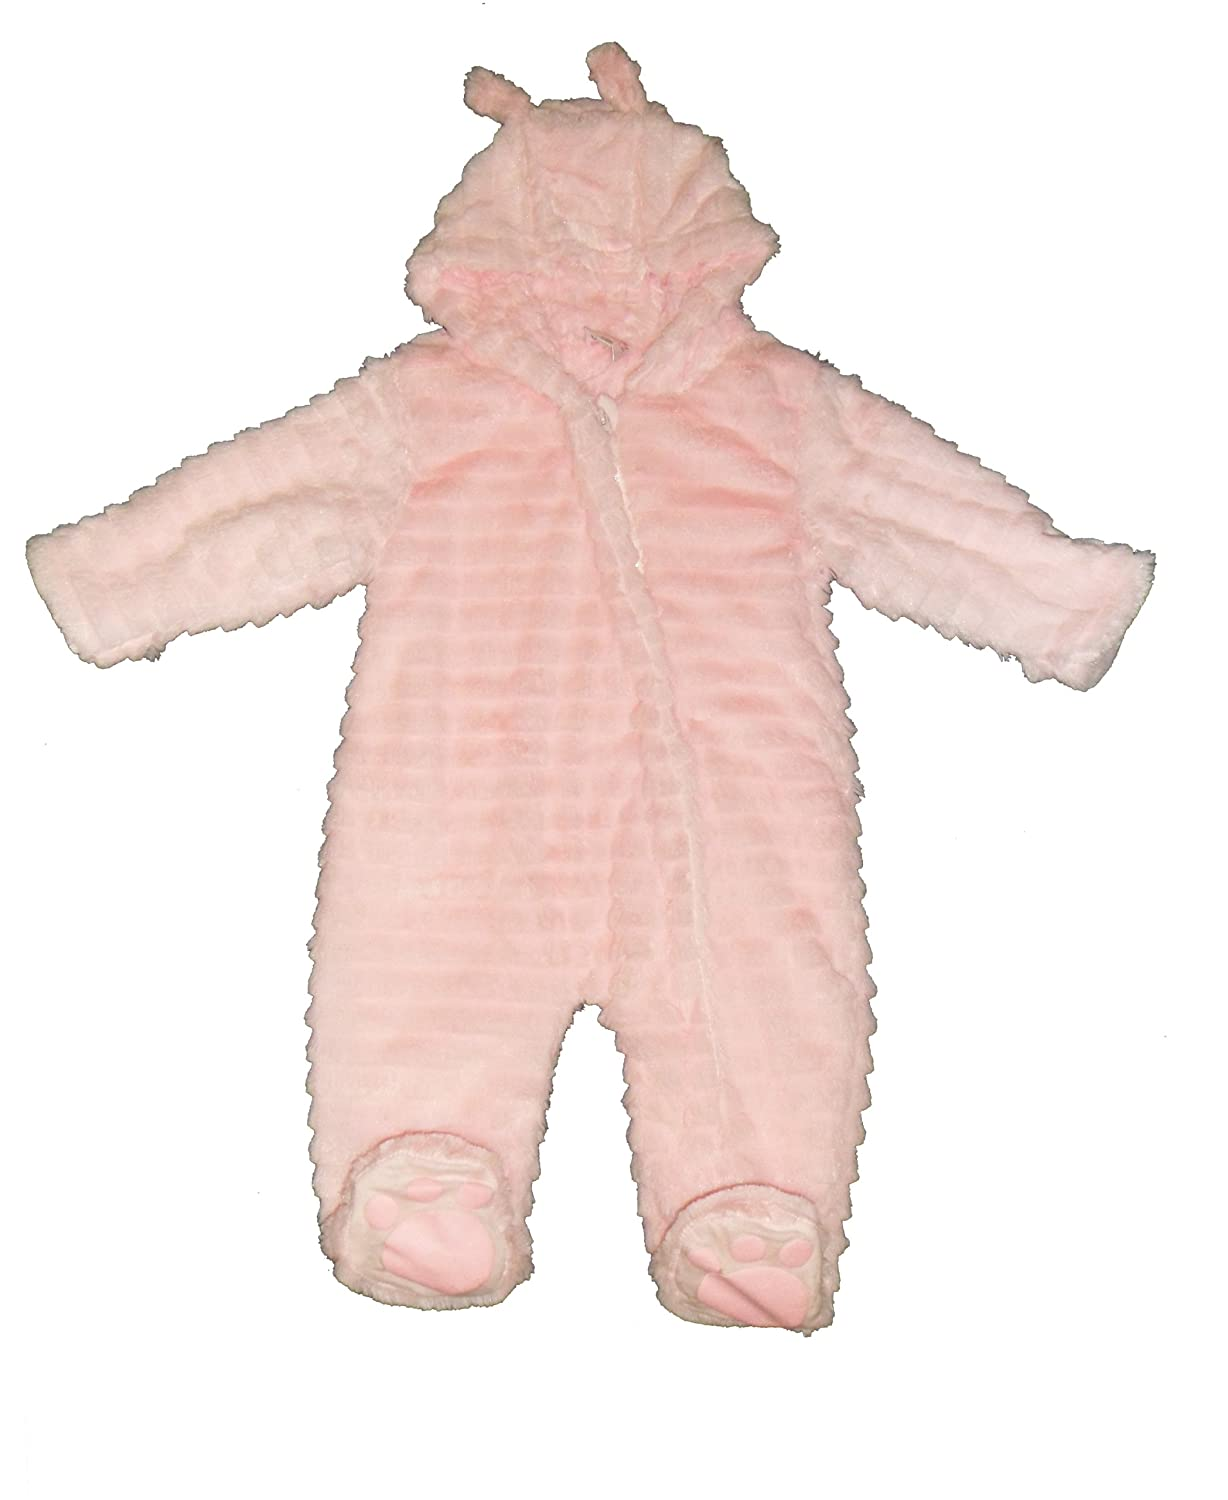 86707f650 Baby Cute Pink Supersoft Ribbed Fur Snowsuit With Ears   Fold Over ...